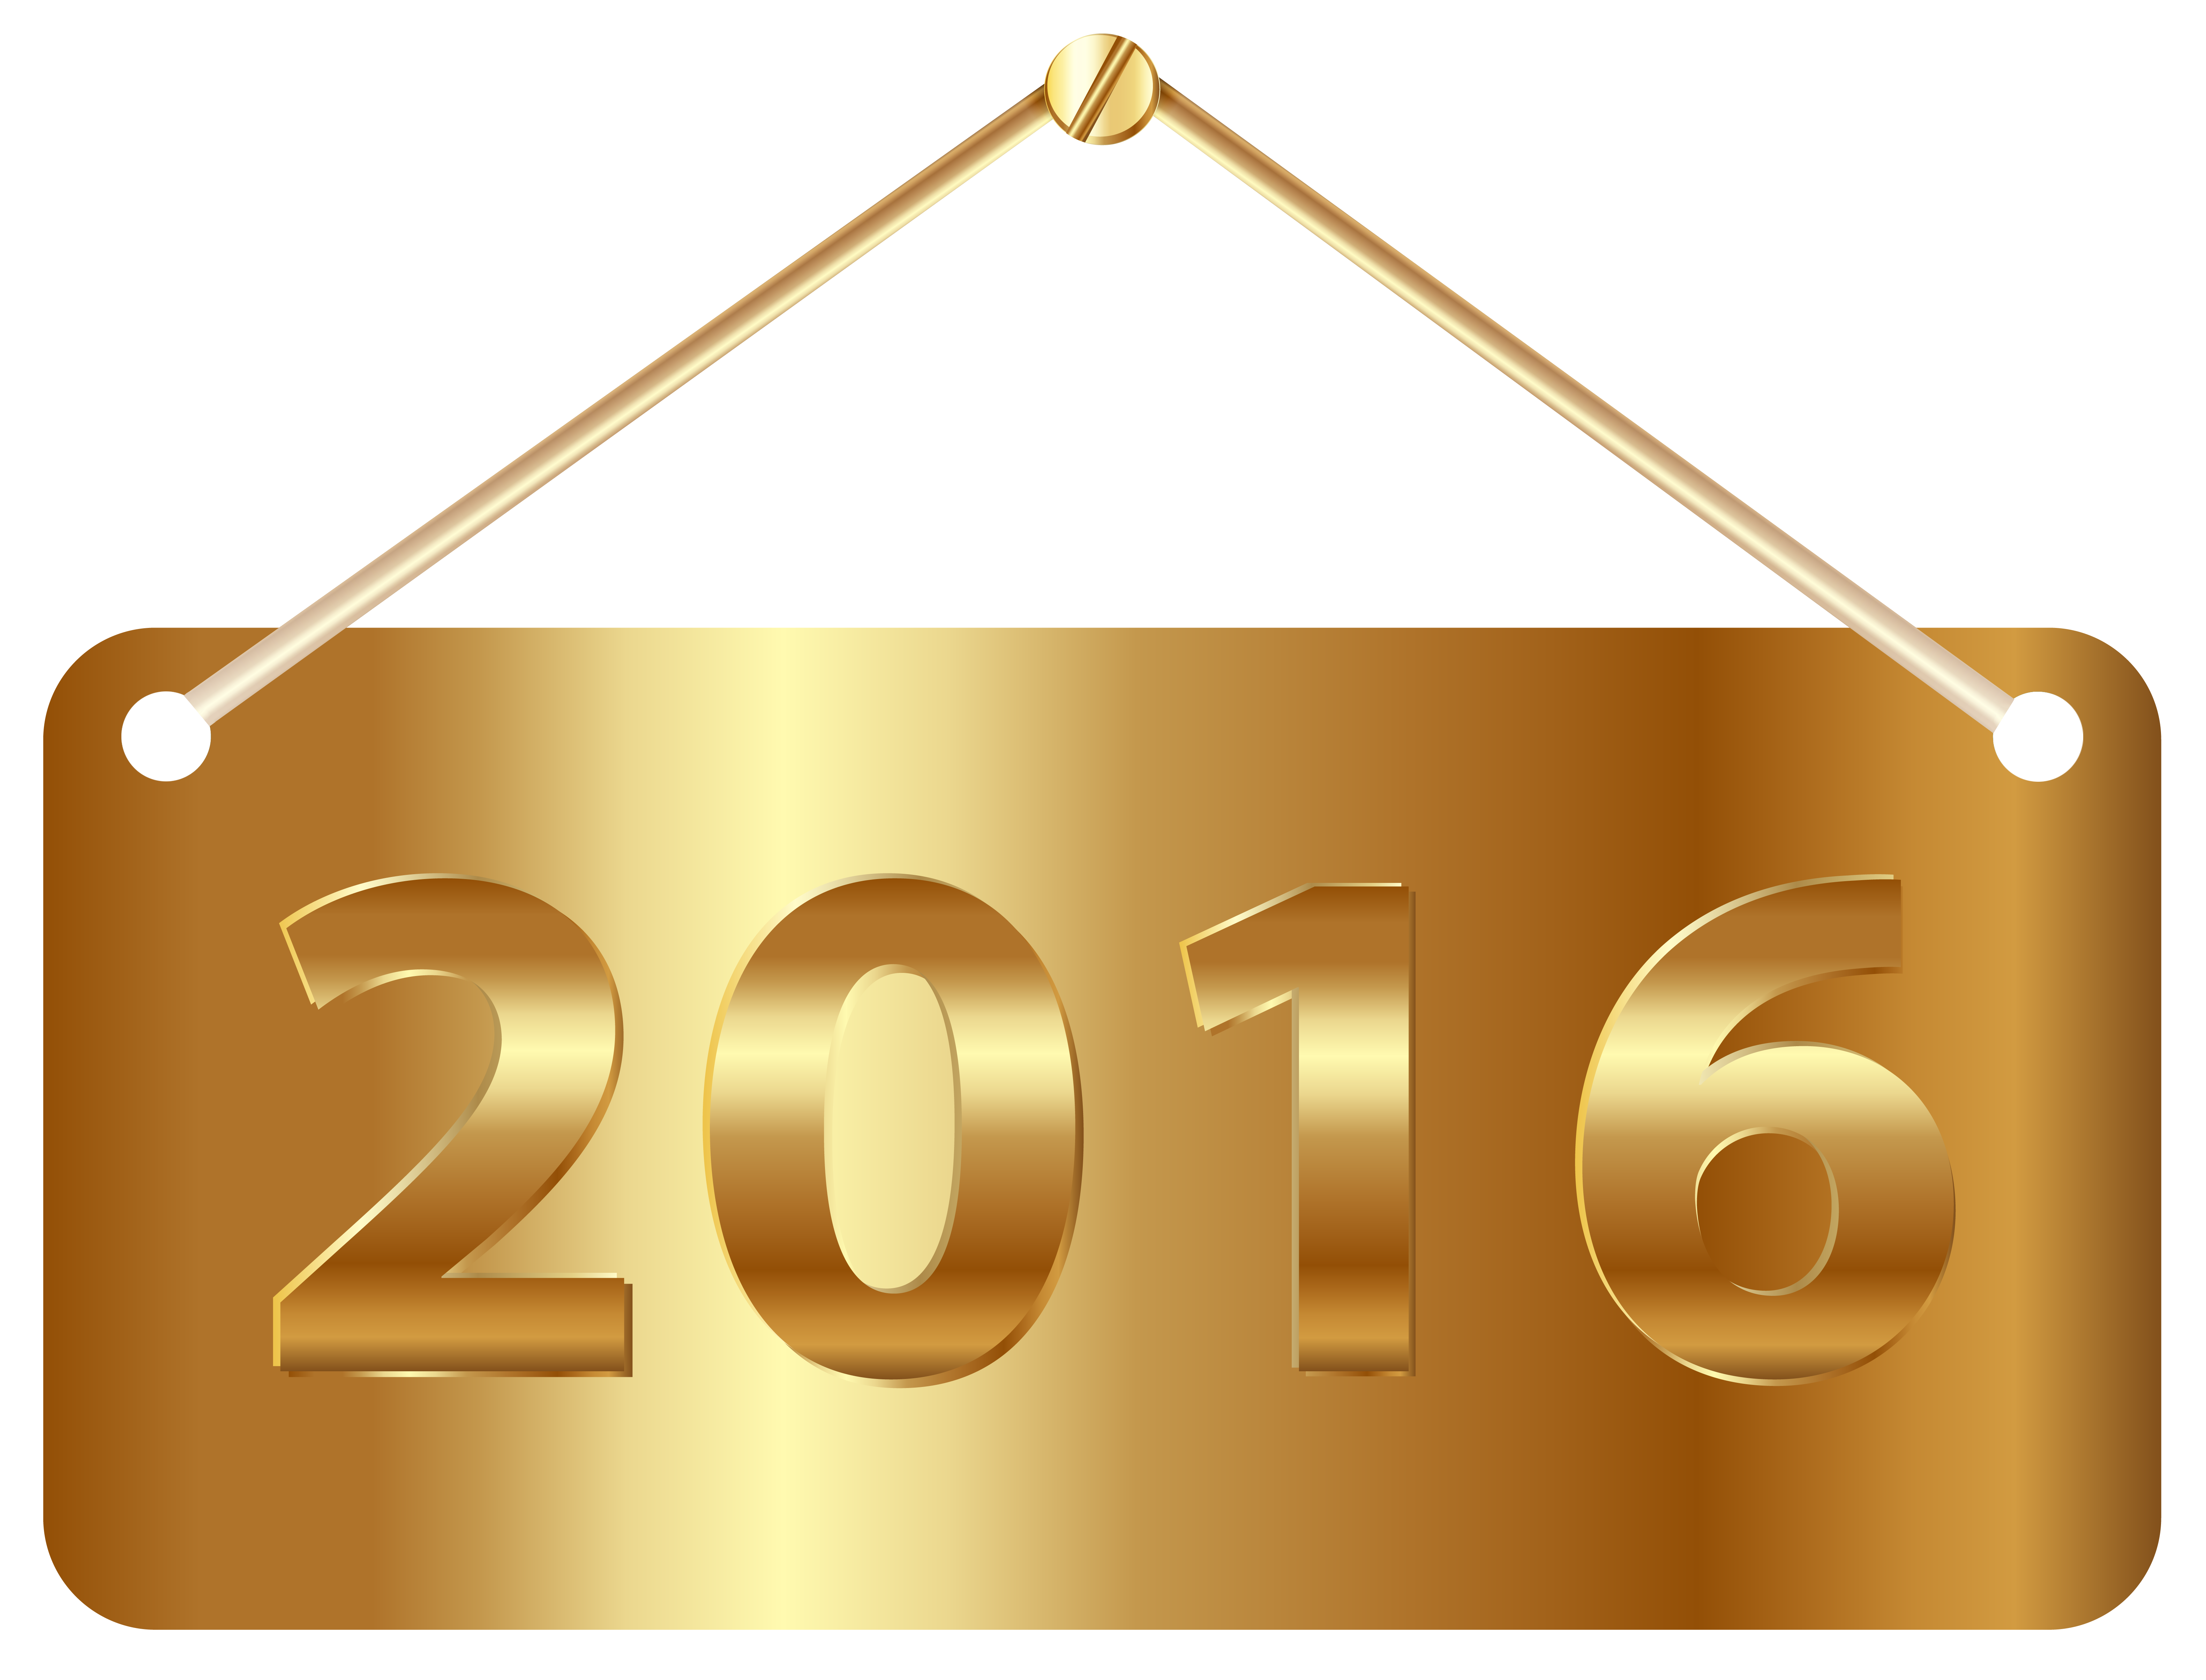 Gold label clipart image. 2016 png png library stock